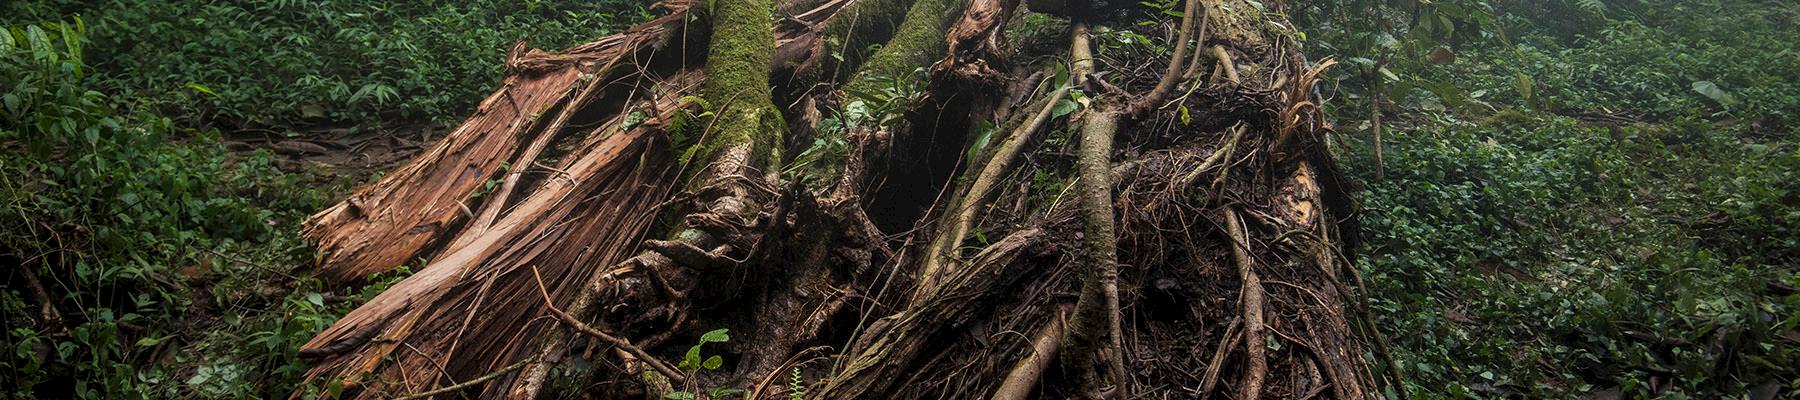 Felled tree in the forest at the base of Mount Cameroon © A. Walmsley / TRAFFIC